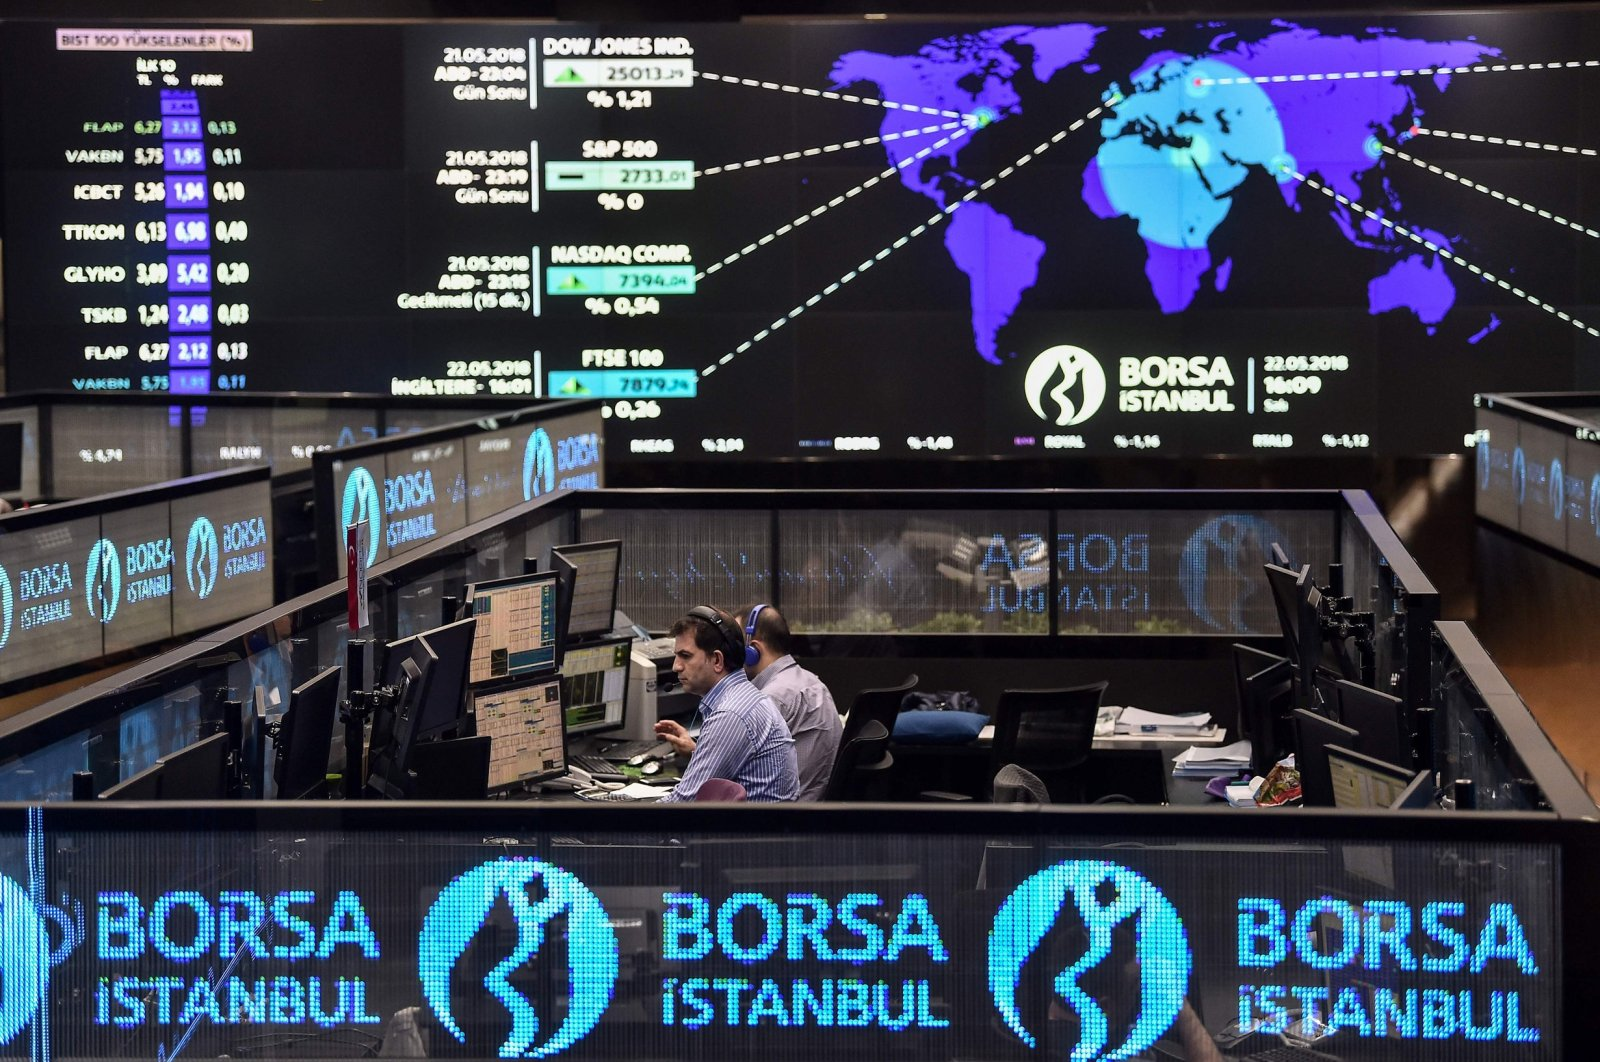 Traders work at their desks on the floor of the Borsa Istanbul stock exchange, Istanbul, Turkey, May 22, 2018. (AFP Photo)